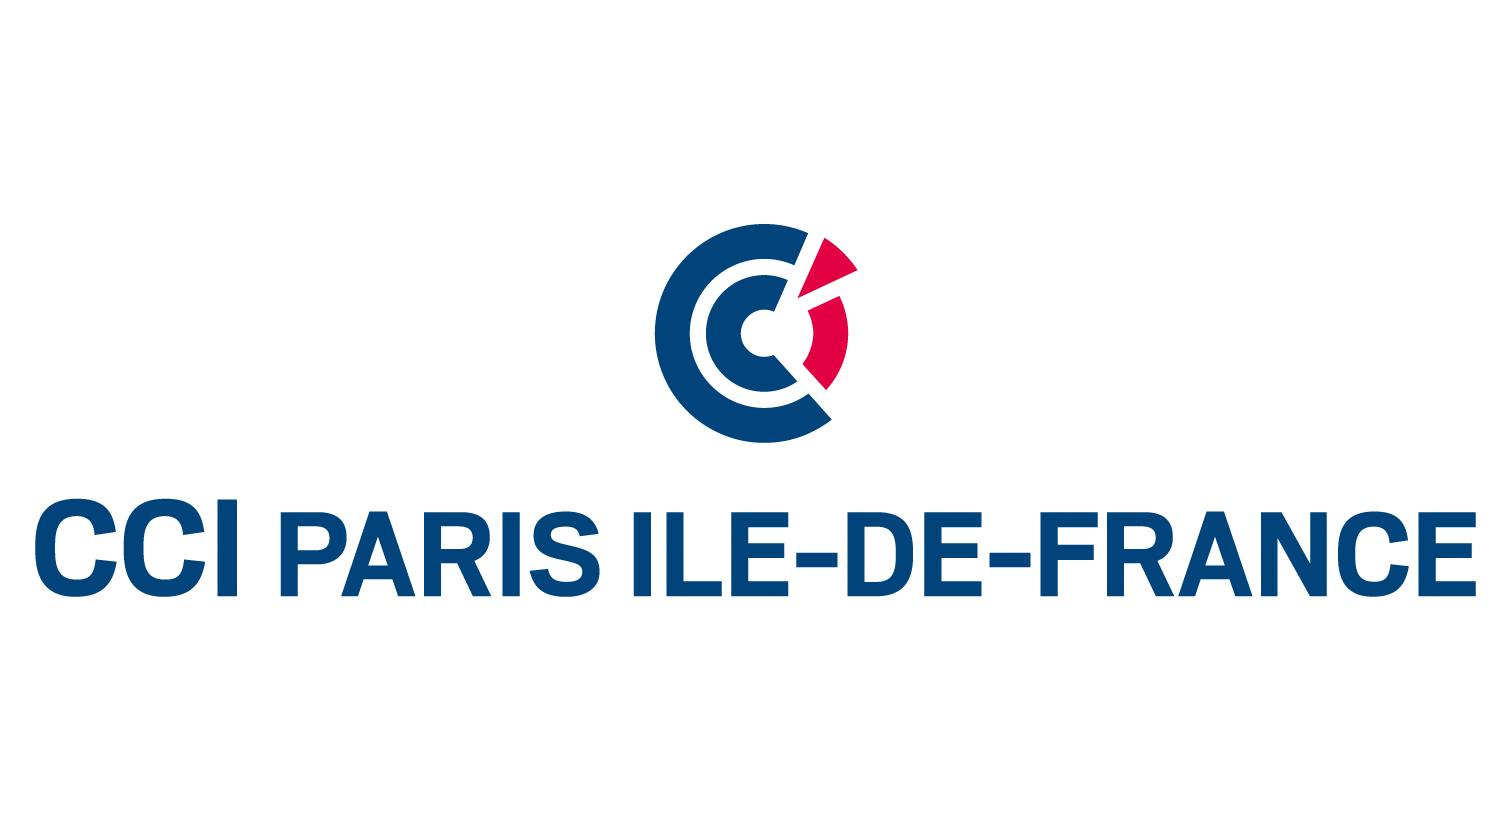 Membres defi for Chambre de commerce de paris arbitrage